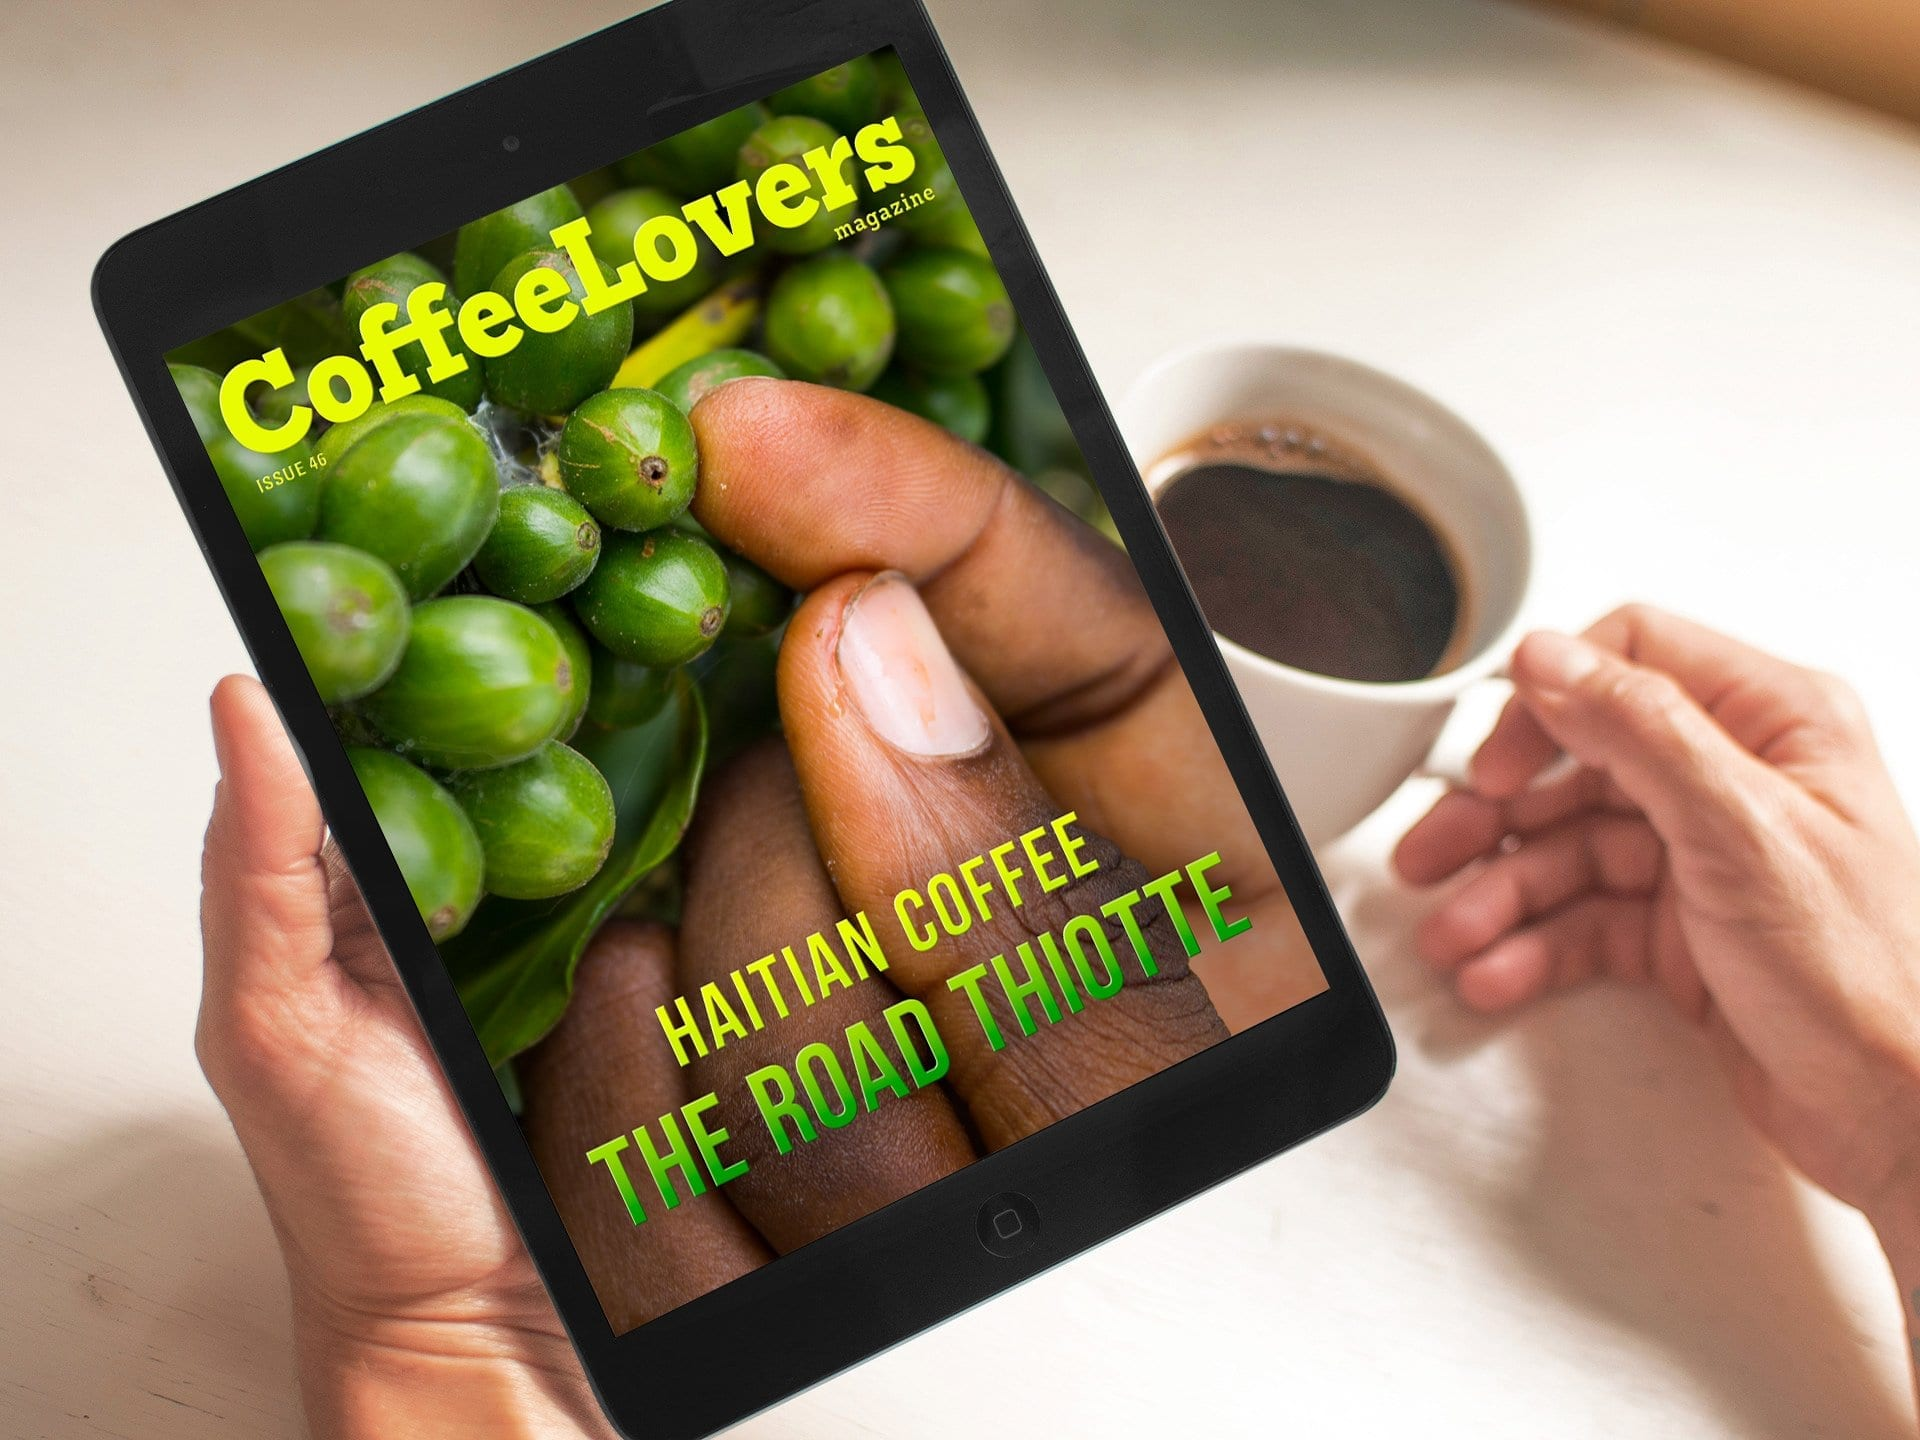 Coffee Lovers Magazine Issue 46 - Haitian Coffee: The Road to Thiotte